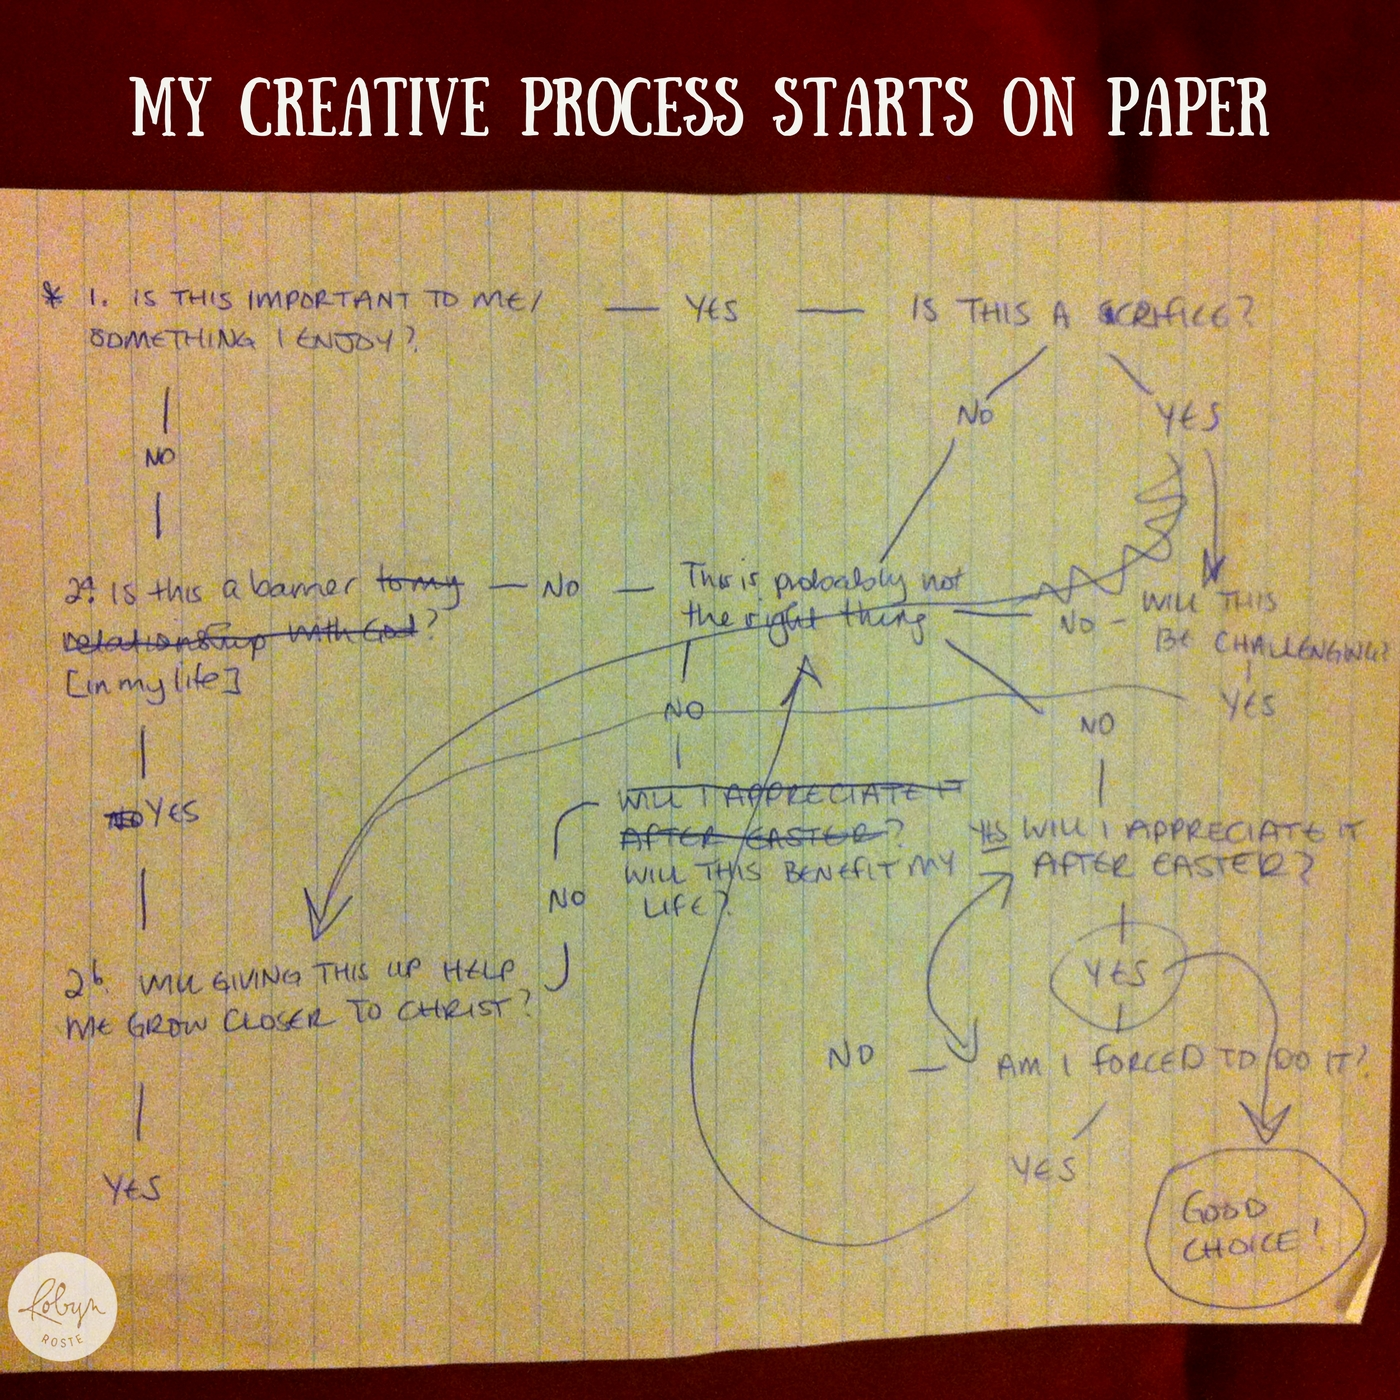 My creative process